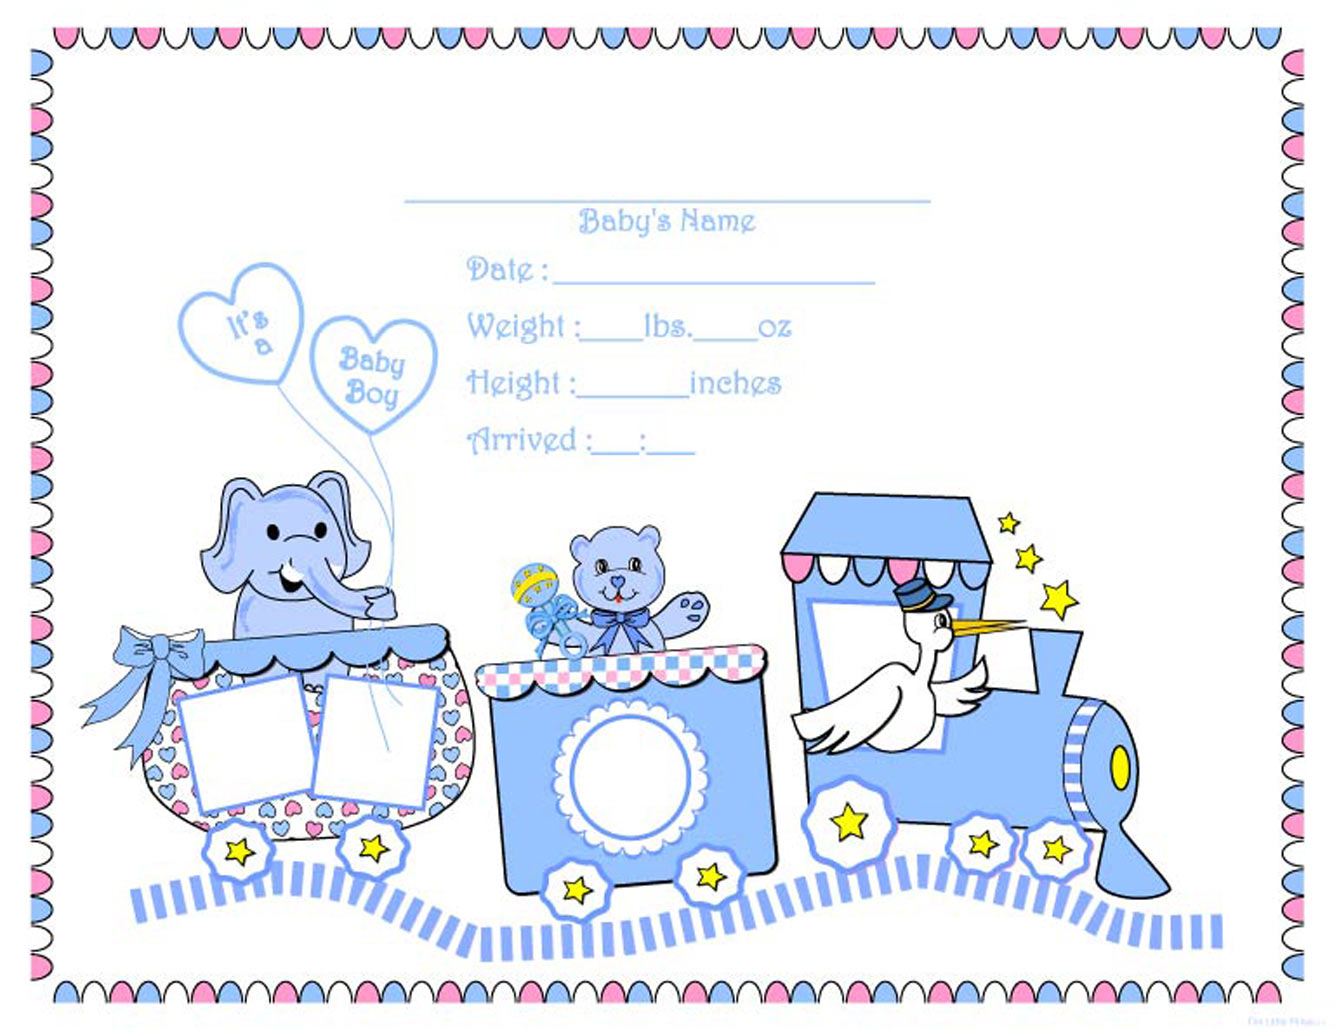 Download Jpeg Printable Baby Book Pages Part Ii From Moming About